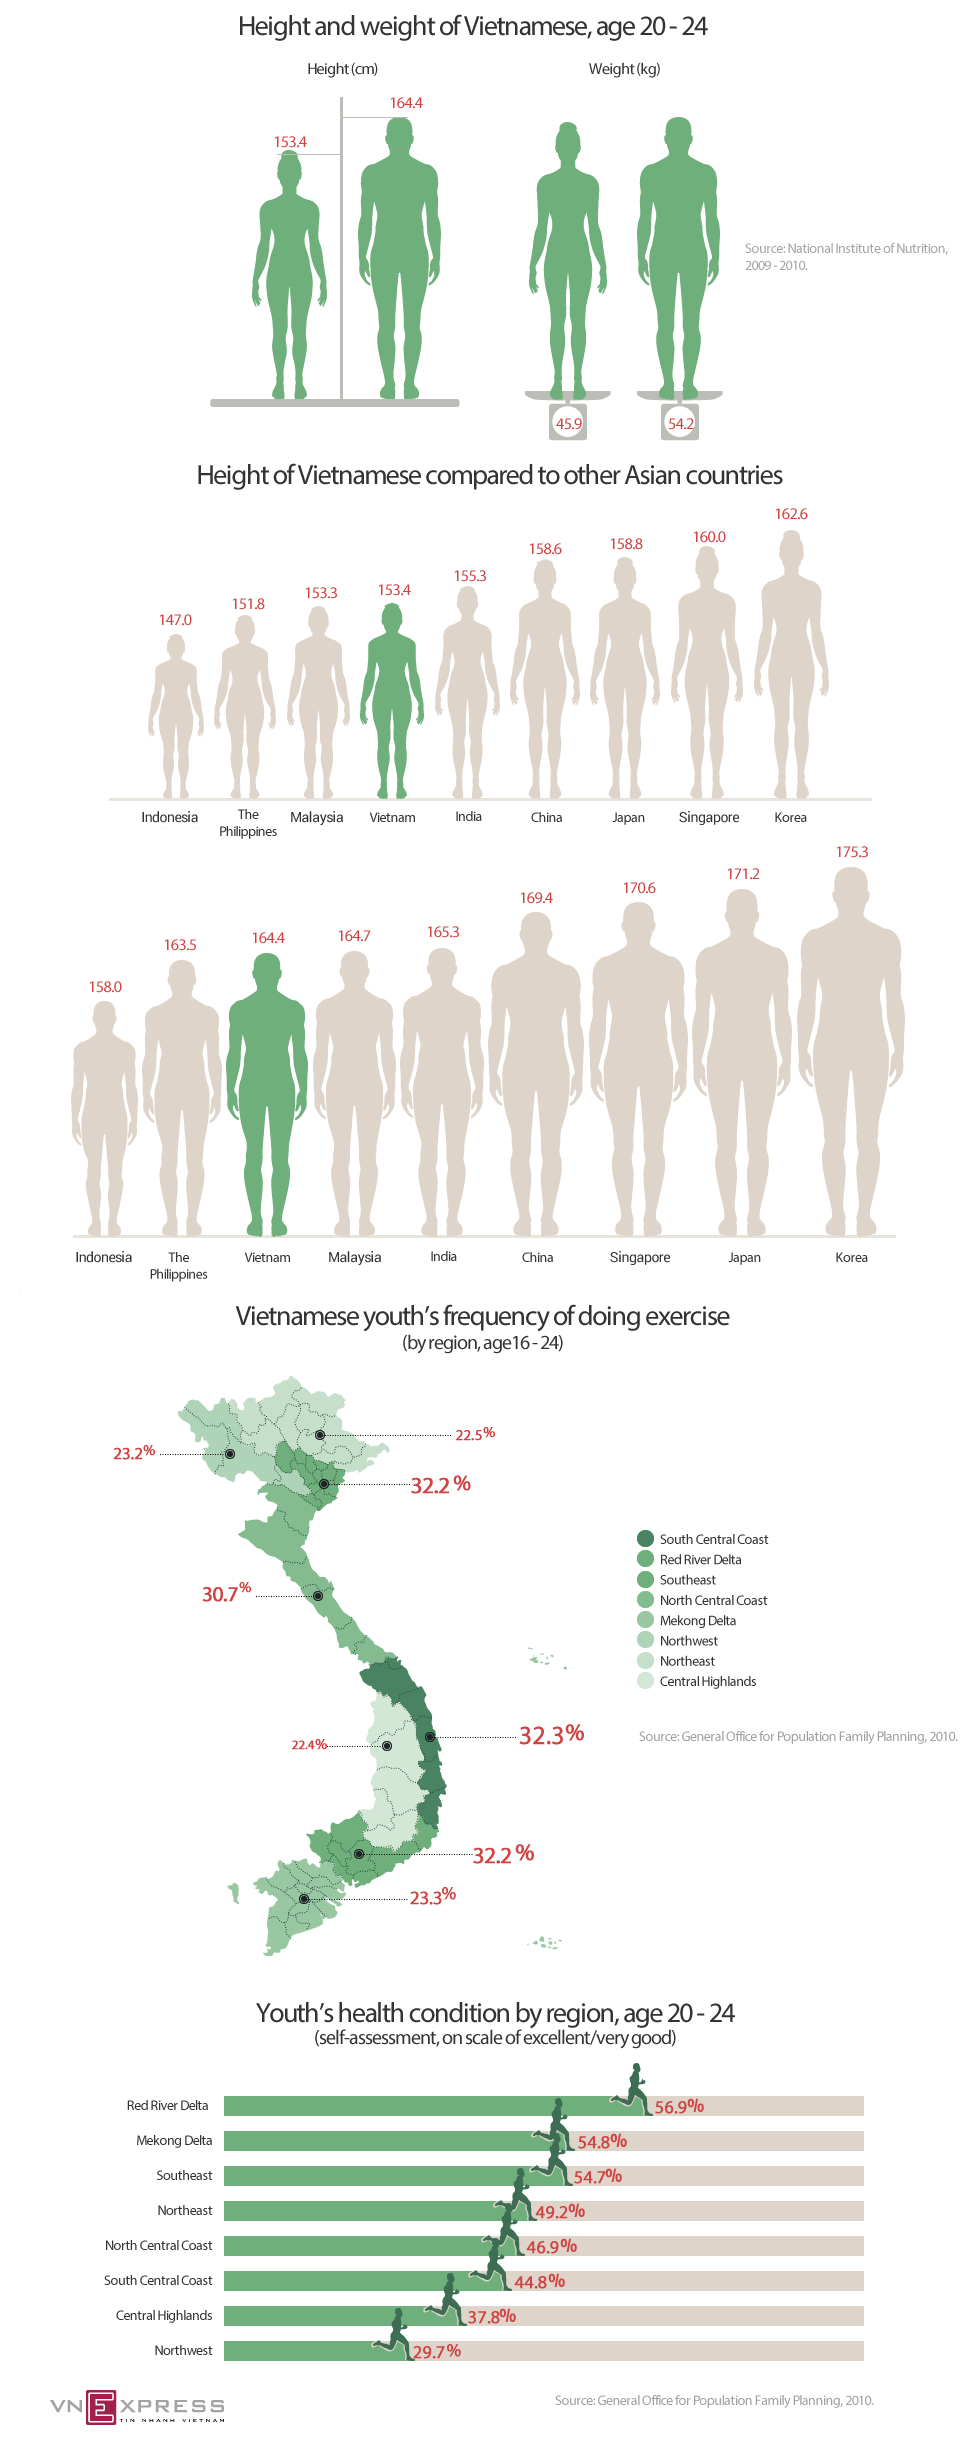 Vietnamese have a long way to go to catch up with average height of other Asians